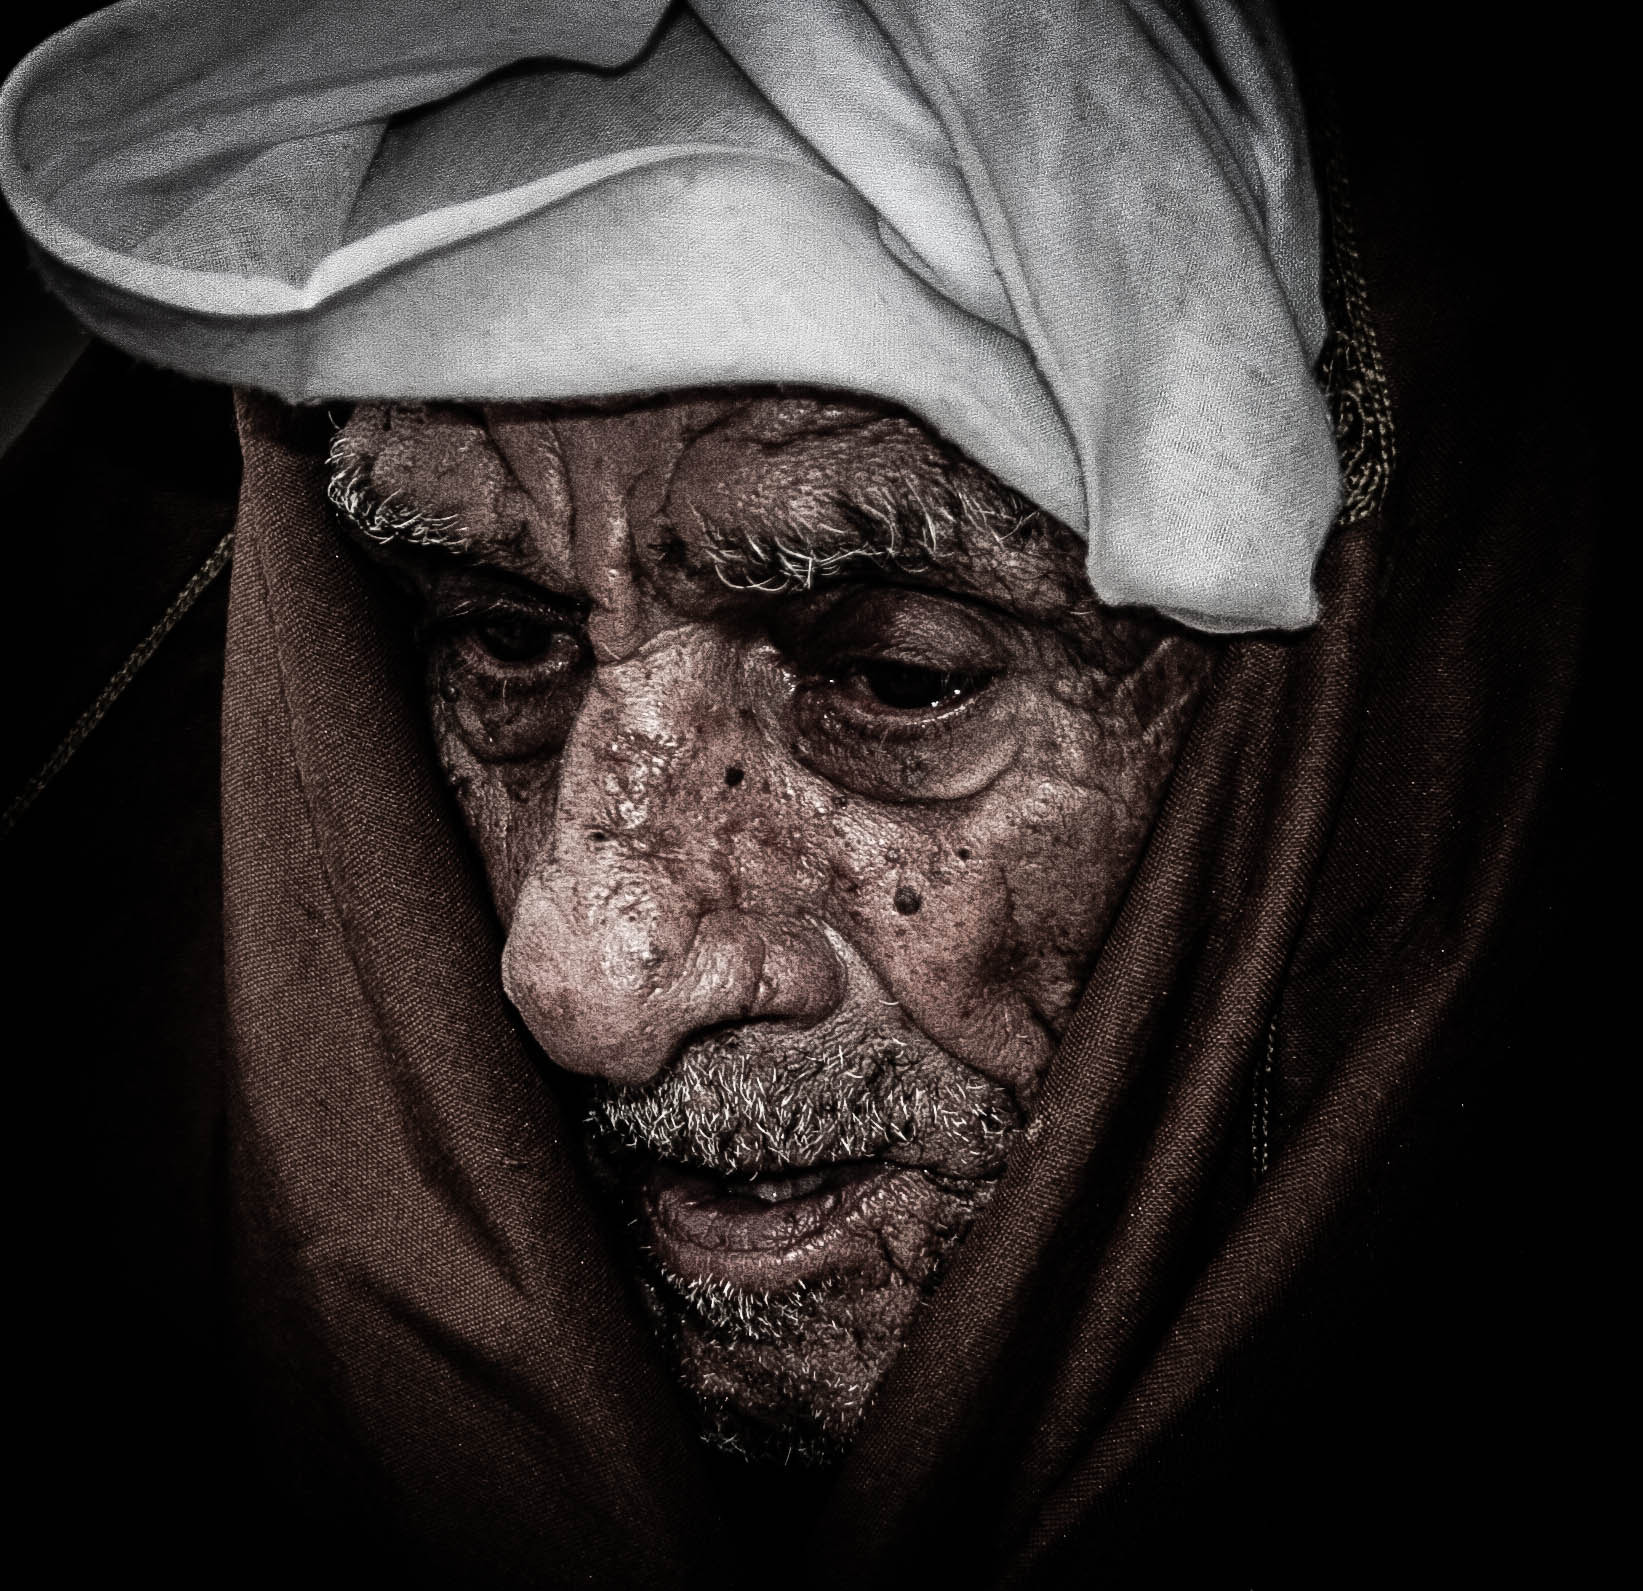 Photograph Fatigue decade by Mohammed Hashim on 500px